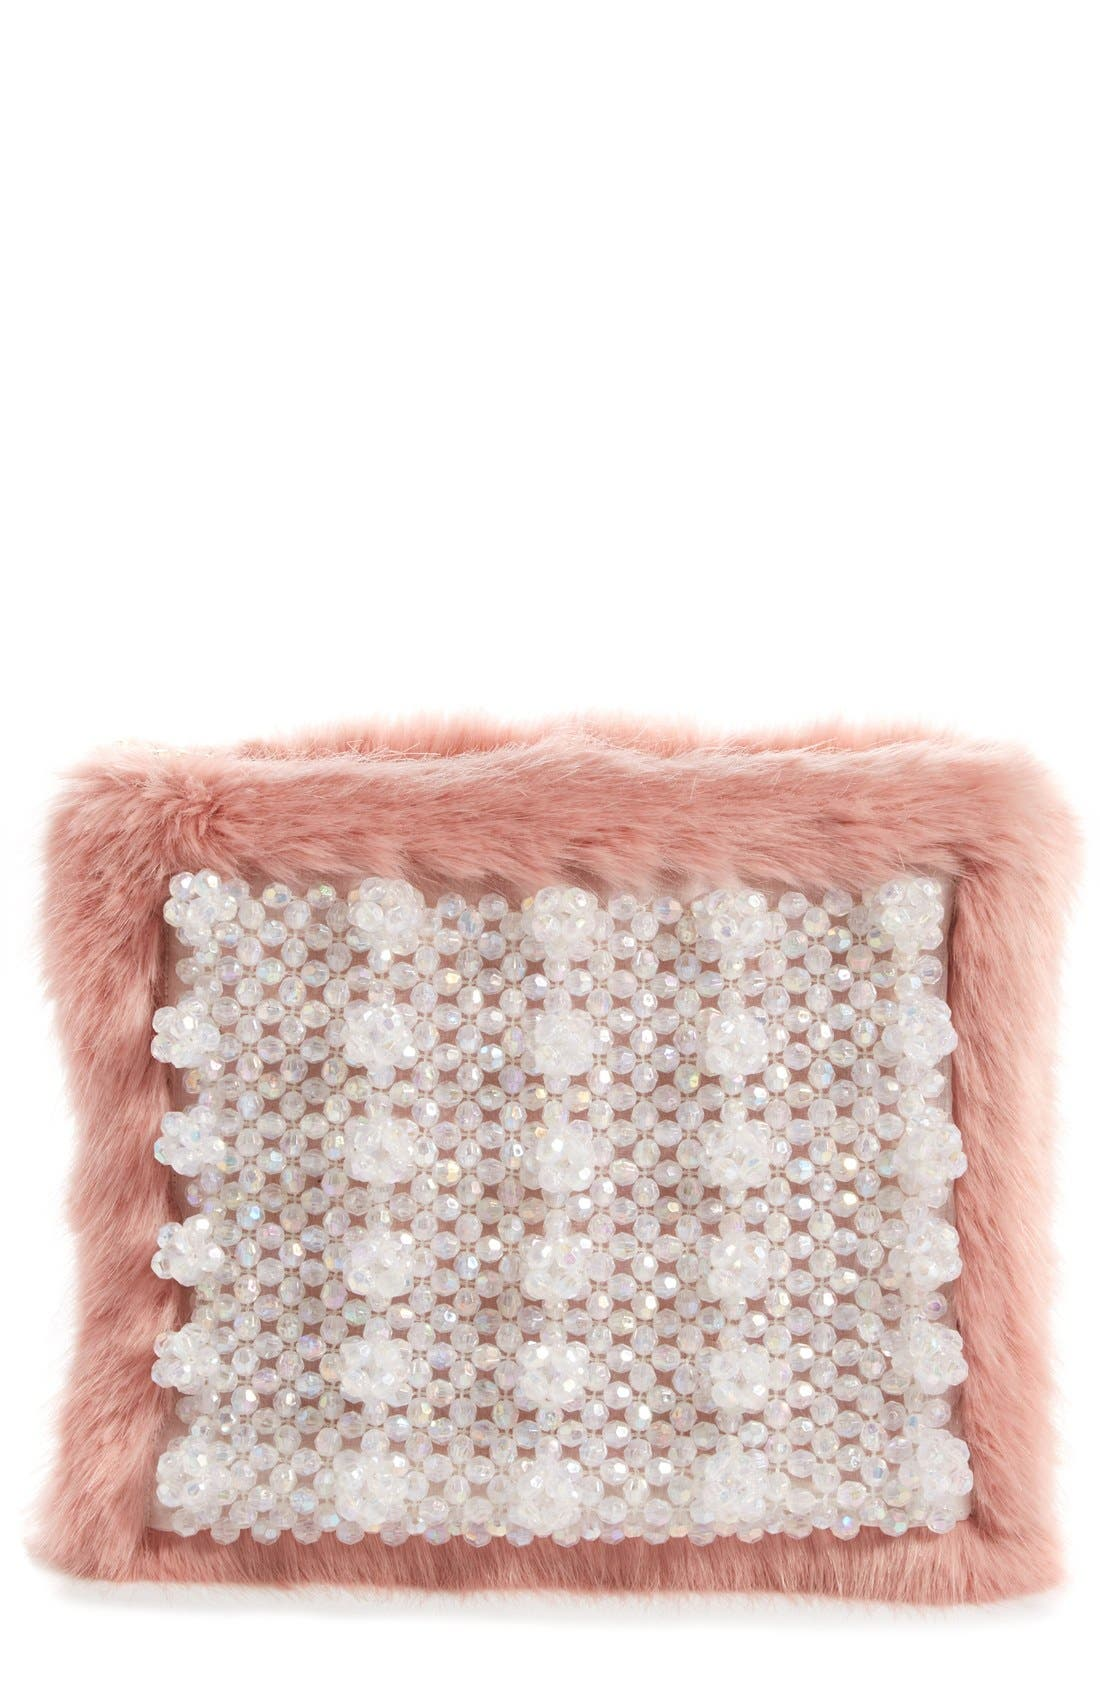 Alternate Image 1 Selected - Shrimps Beaded Faux Fur Clutch